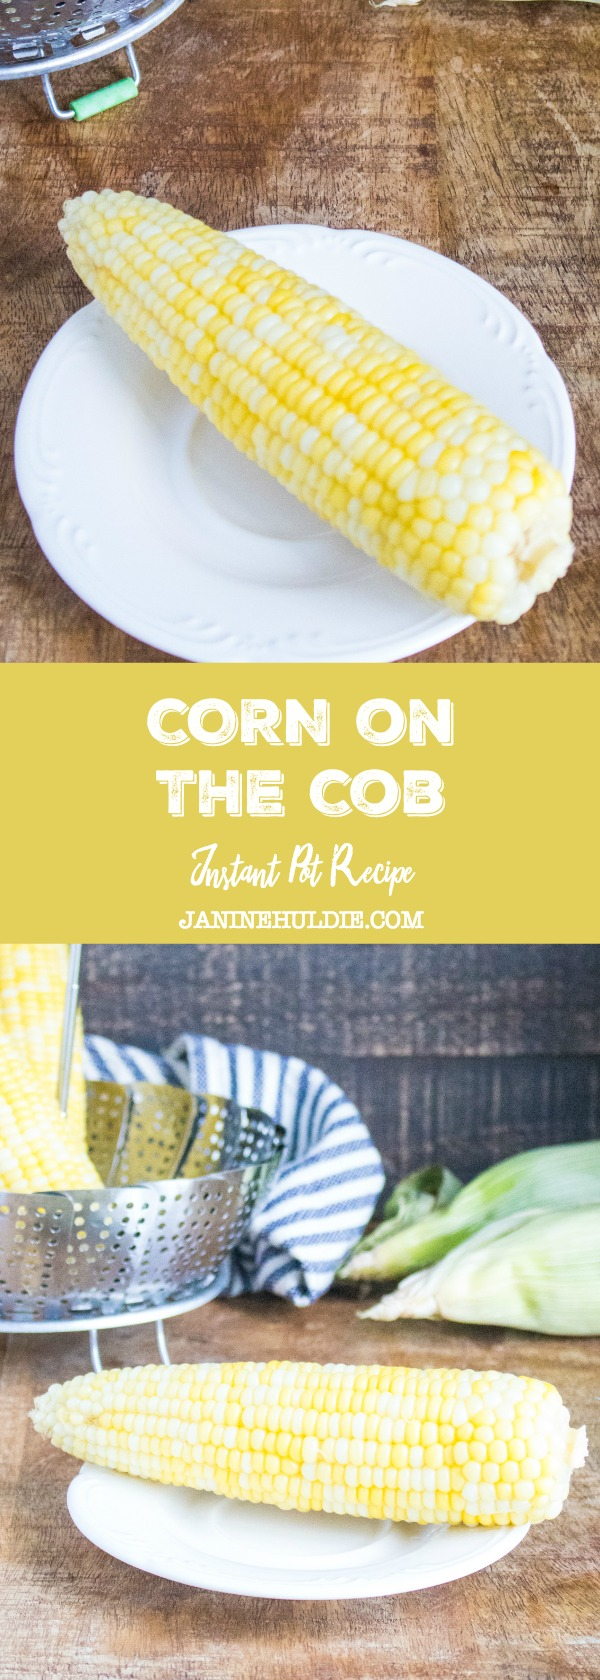 Corn on the Cob Instant Pot Recipe